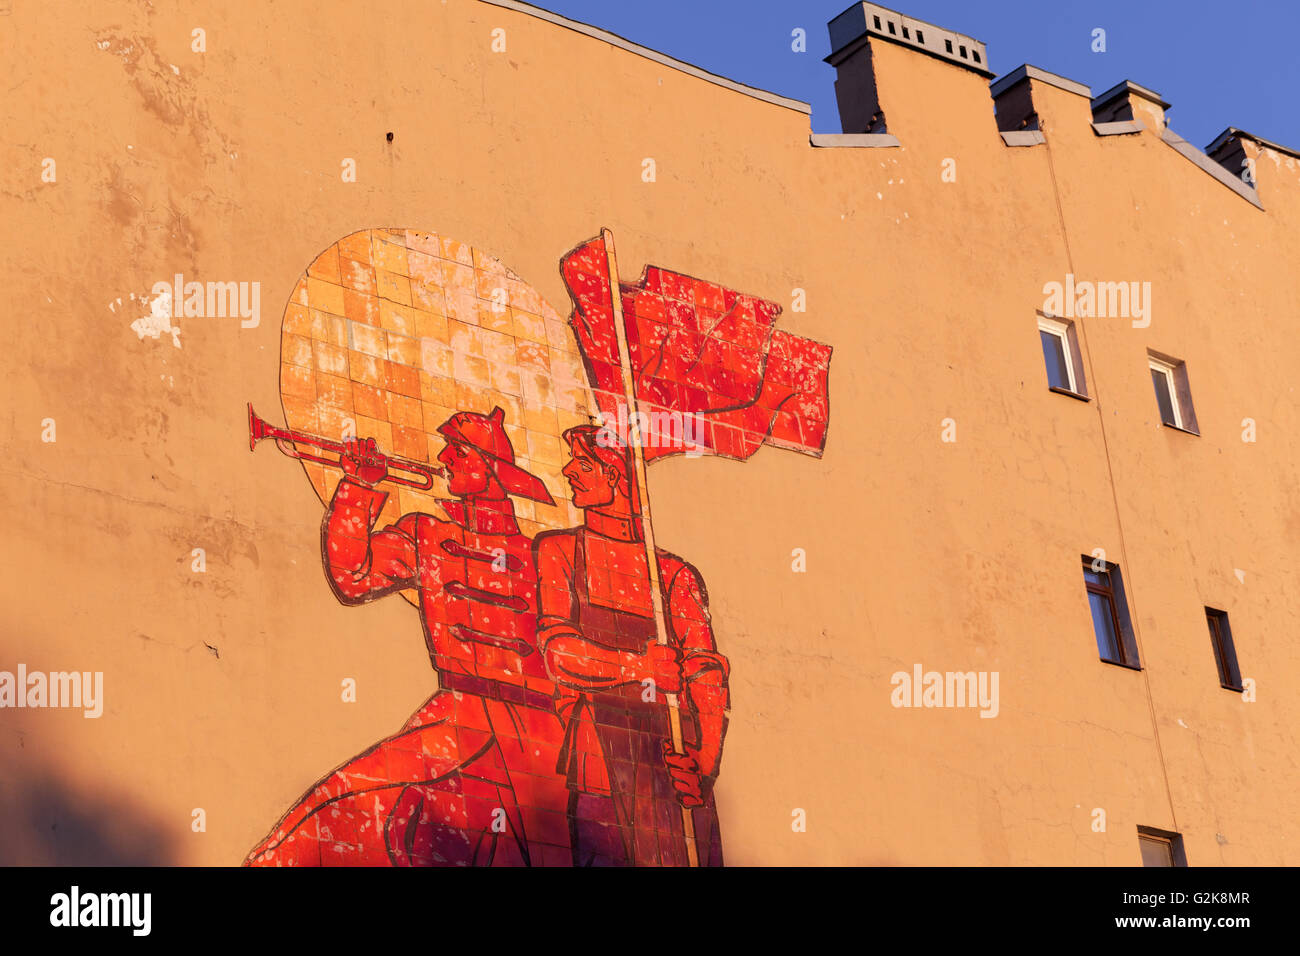 russia civil war red army stockfotos russia civil war red army bilder alamy. Black Bedroom Furniture Sets. Home Design Ideas